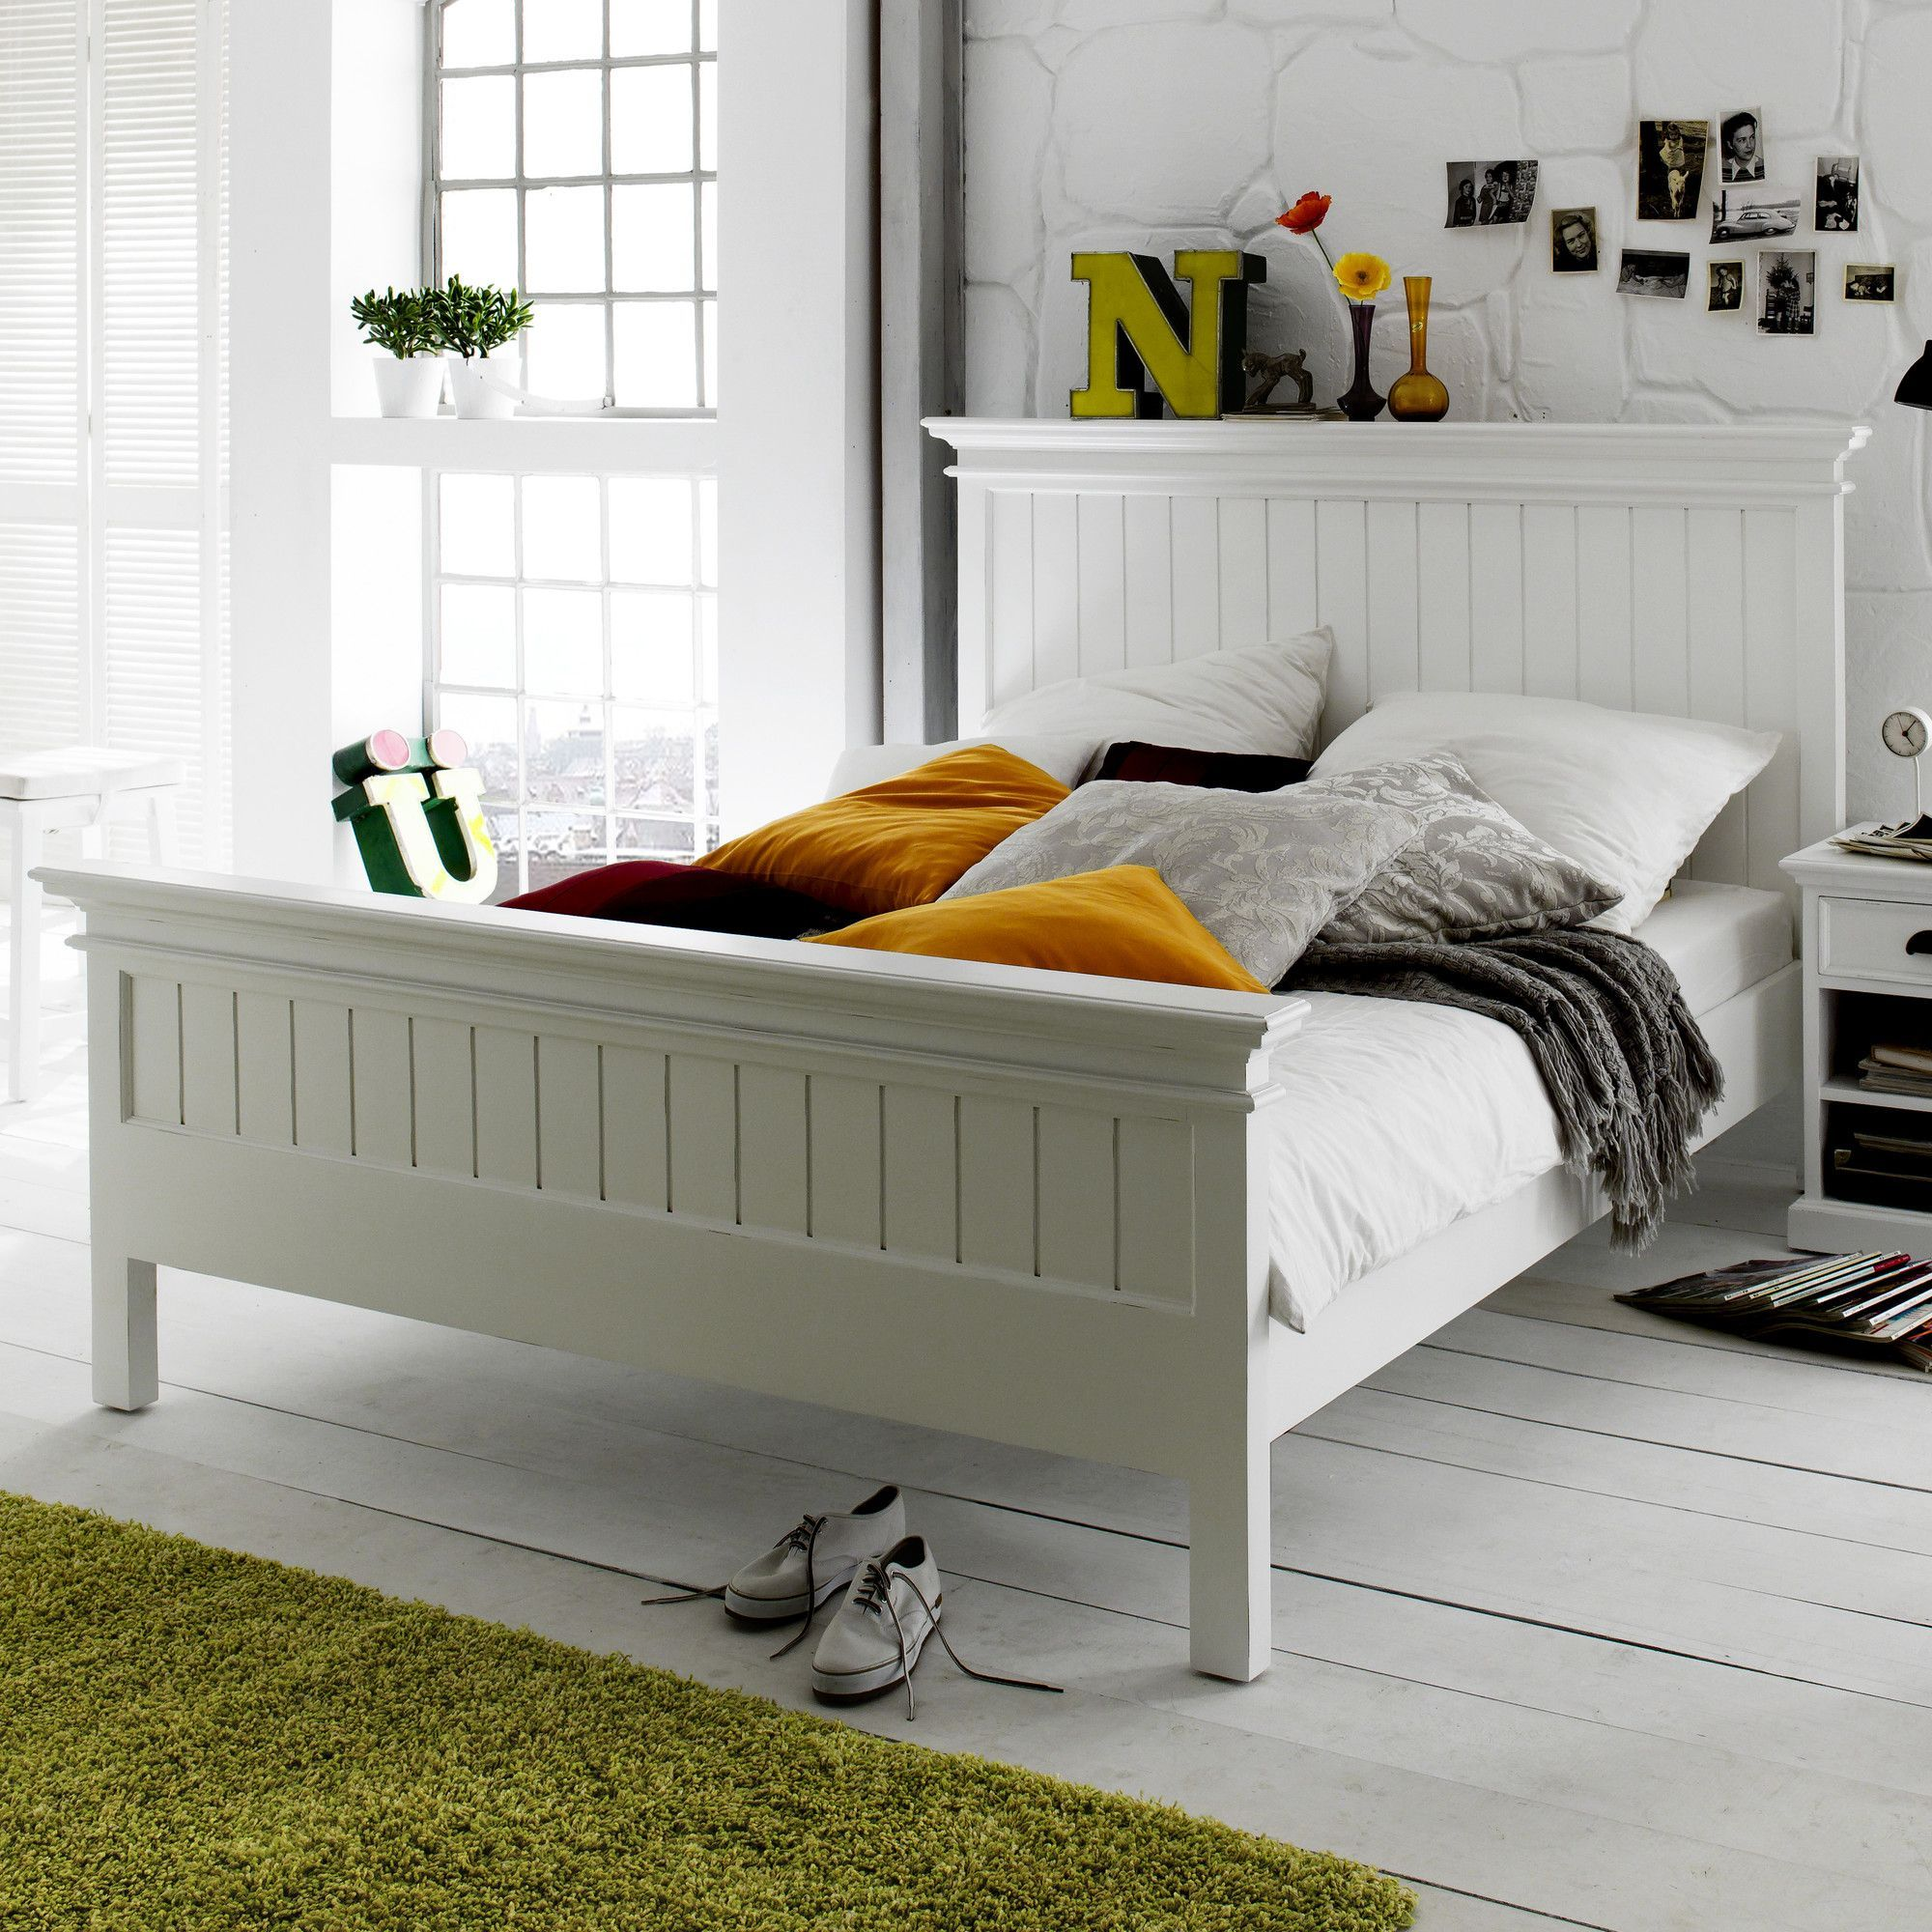 Halifax Panel Bed Queen bed frame, Bed styling, Bed frame